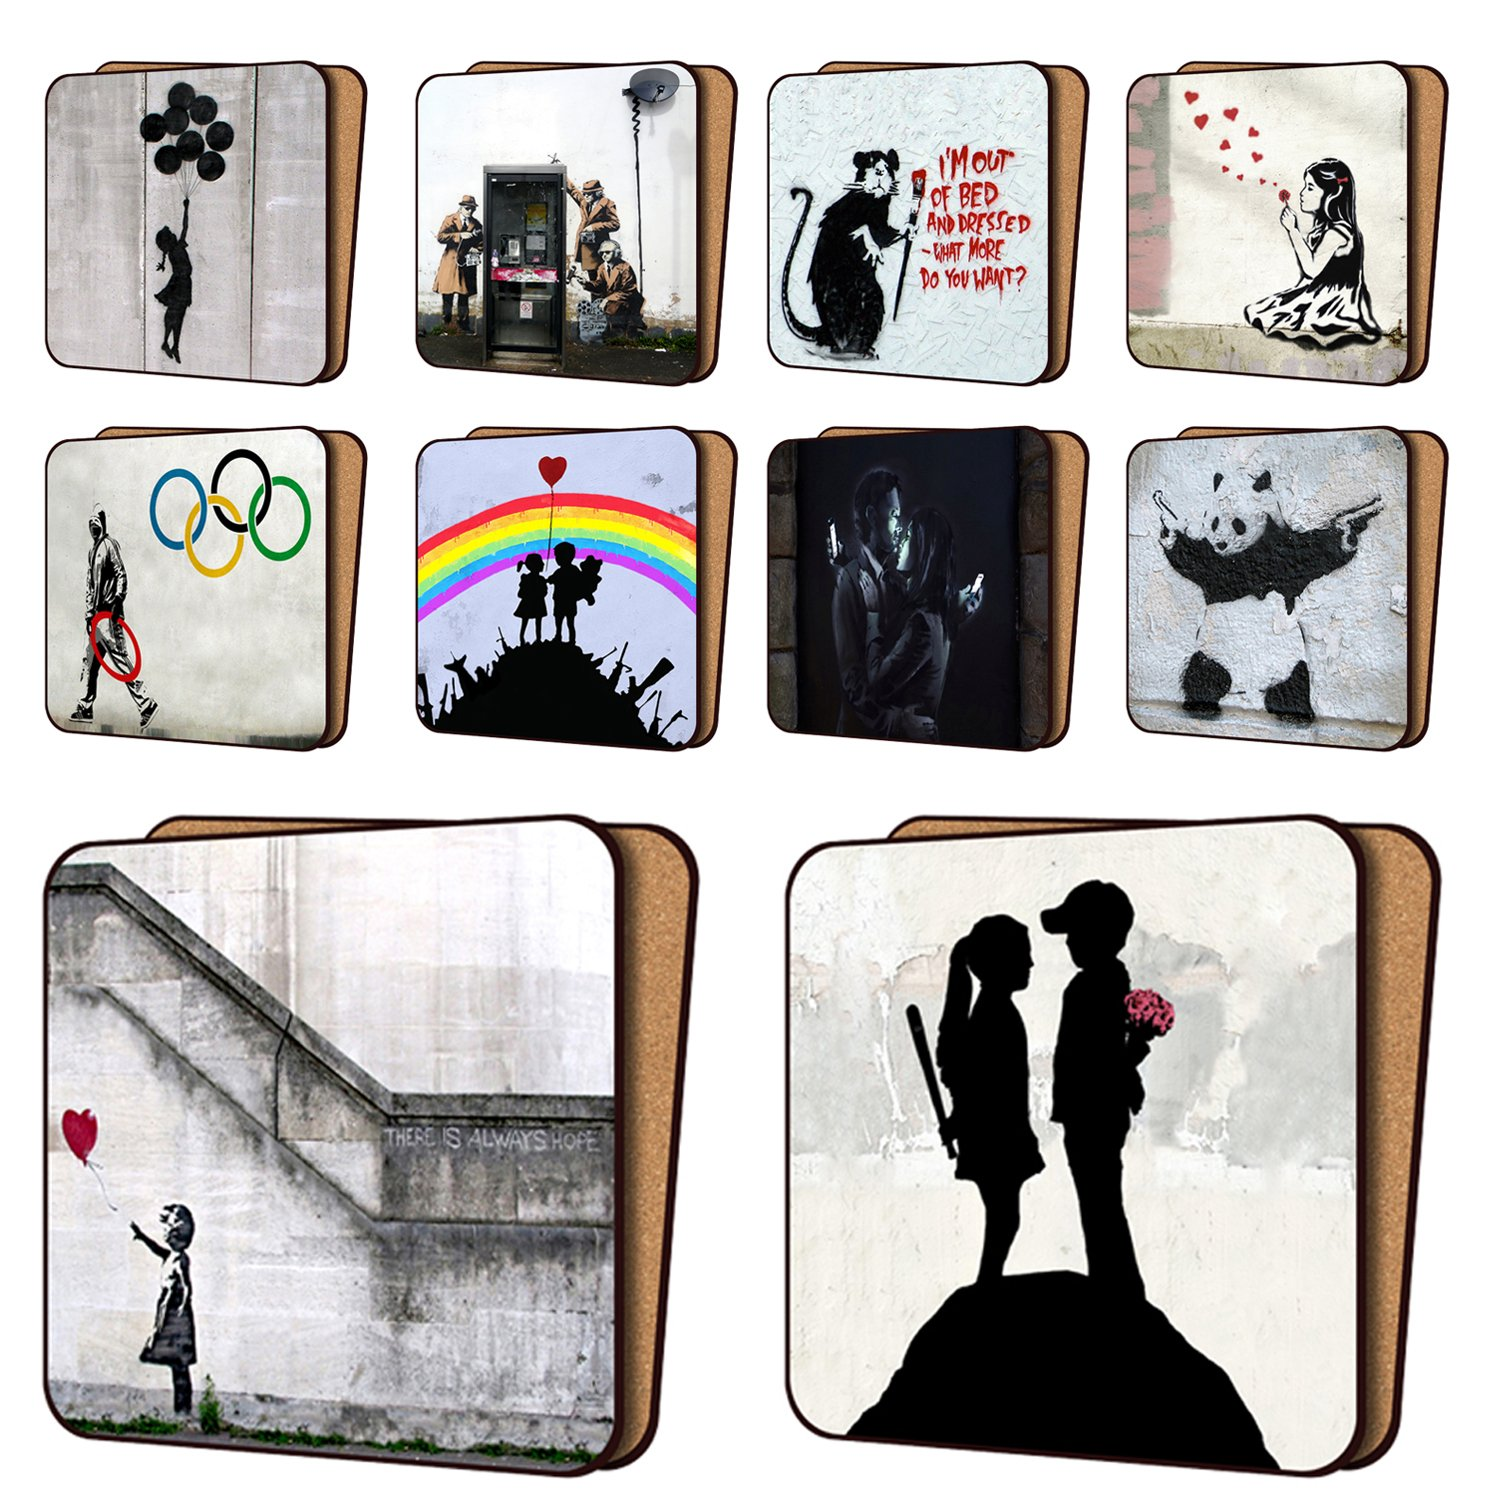 Banksy Coasters Mix1 - 10 New, Balloon Girl Hope, AYNIL All You Need Is Love & More - Dinnerware Coaster Sets 11cm x 11cm ScreenCentre 19870904